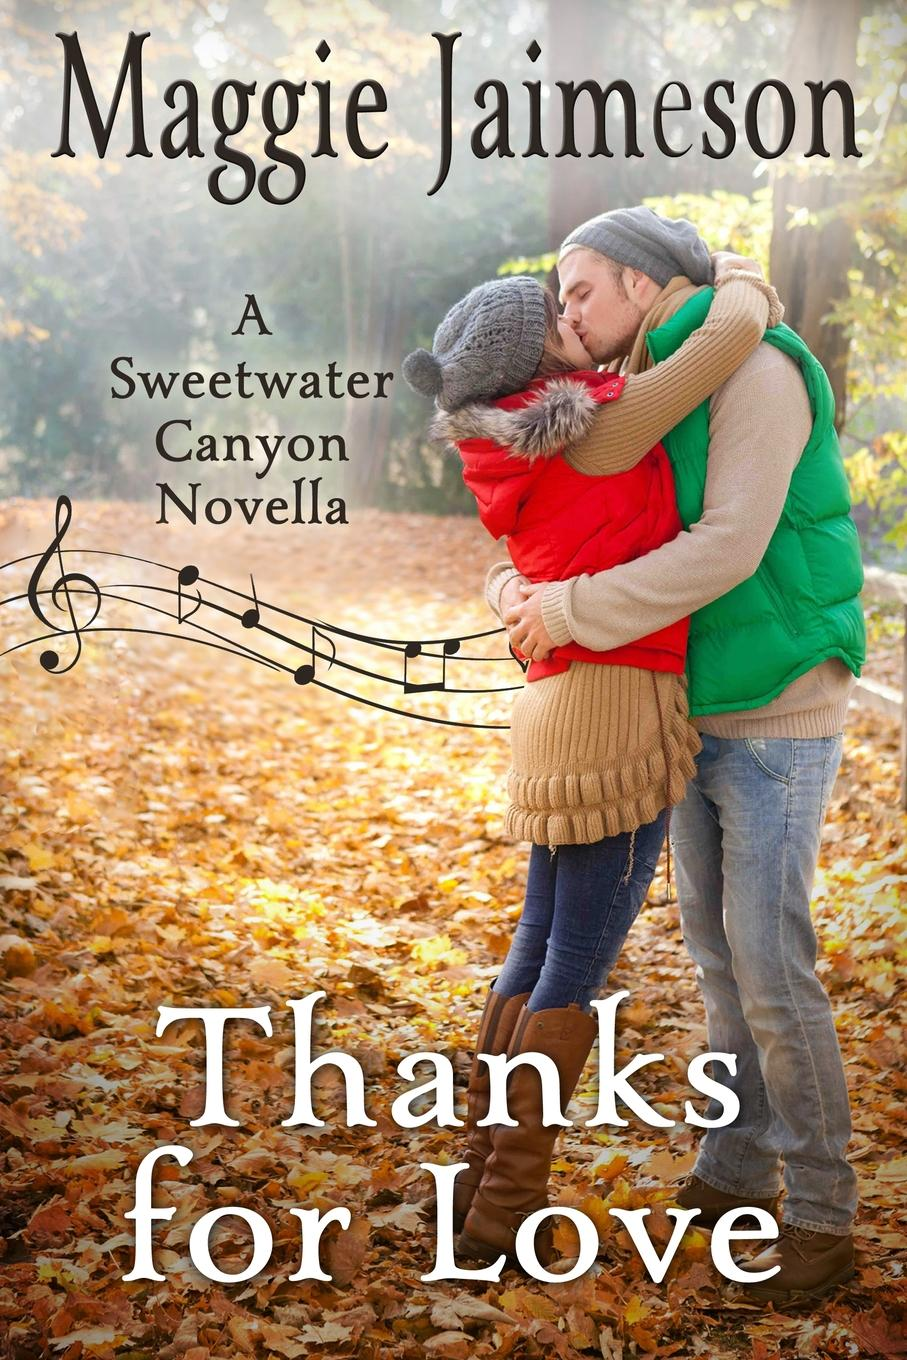 Maggie Jaimeson, Maggie Lynch Thanks for Love. A Sweetwater Canyon Novella